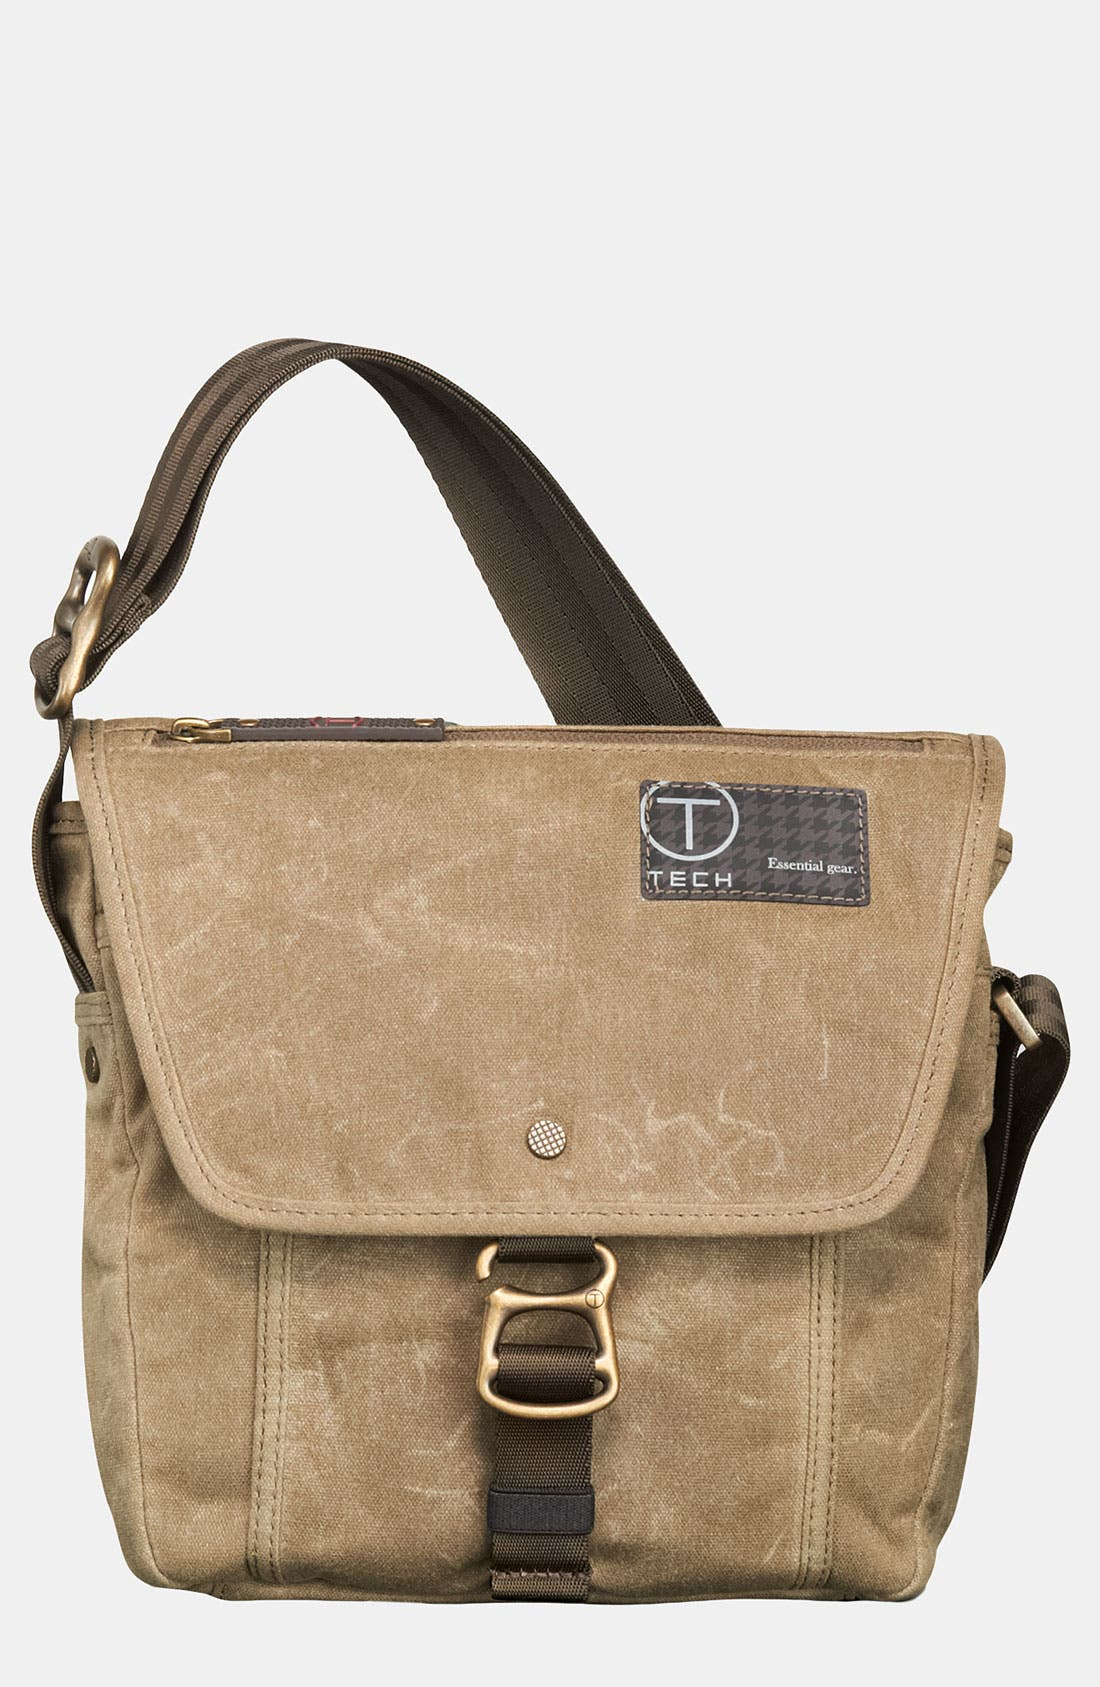 Main Image - Tumi 'T-Tech Icon - Lewis Small' Flap Crossbody Bag